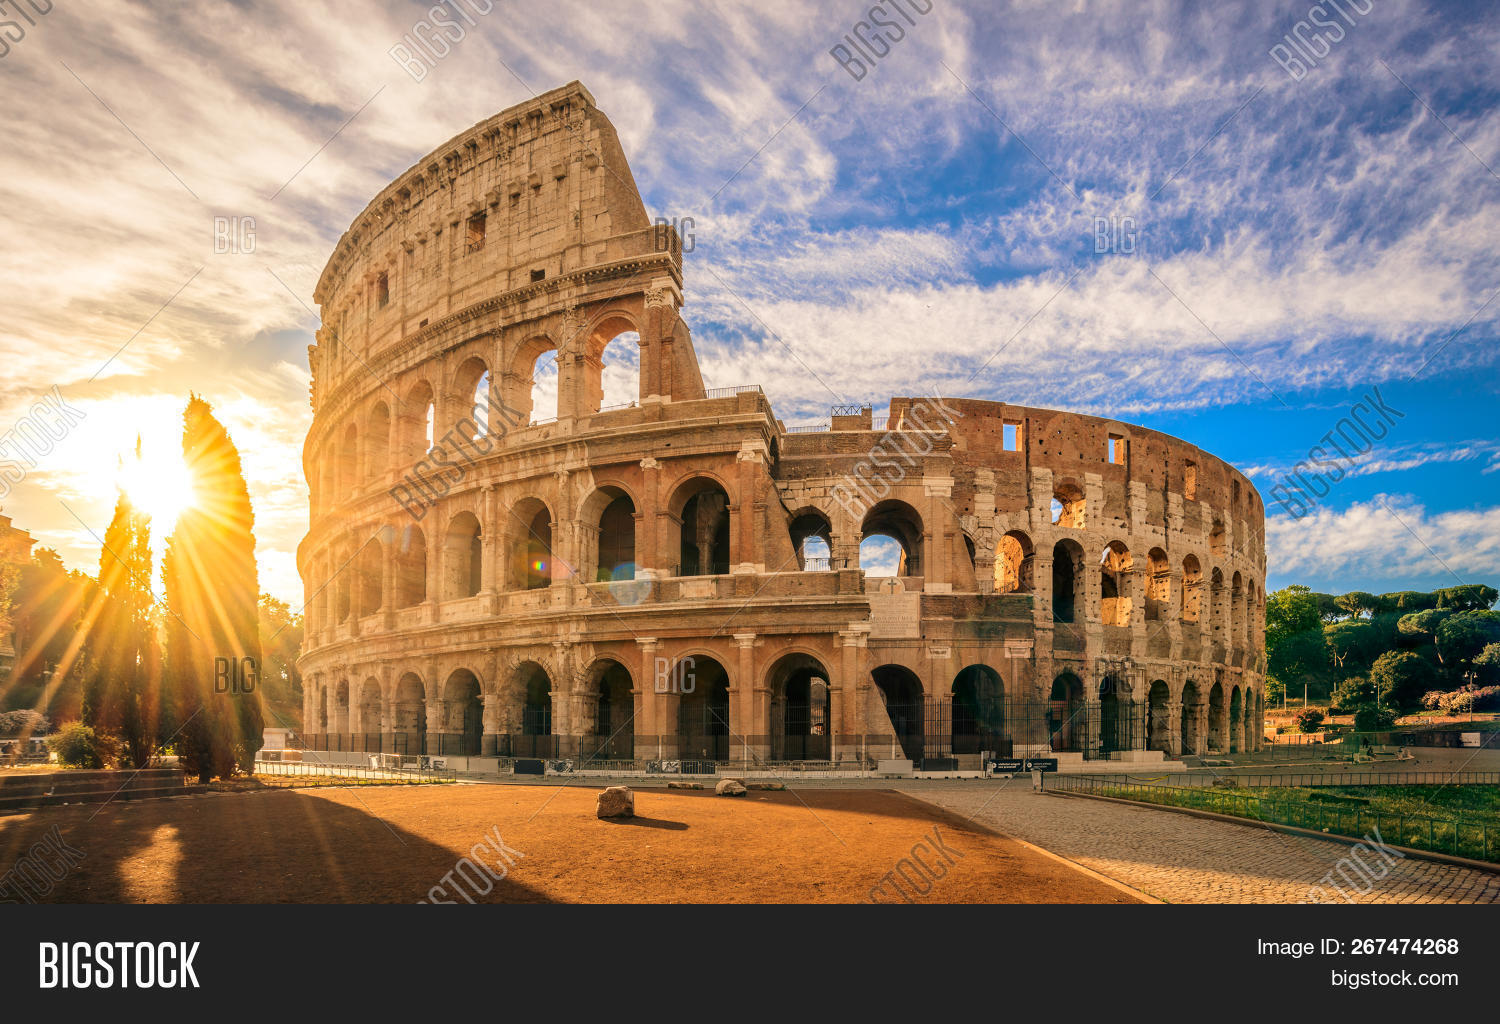 Europe,Italy,Rome,amphitheater,ancient,architecture,arena,atmosphere,baroque,beauty,birth,brick,centurion,christian,christianity,coliseum,colosseum,culture,dawn,emperor,empire,famous,gladiator,heritage,historic,historical,history,holidays,impressive,italian,landmark,light,monument,morning,nobody,notorious,old,roman,ruin,sky,solemn,stadium,stone,sun,sunbeams,sunrise,sunset,tourism,travel,trees